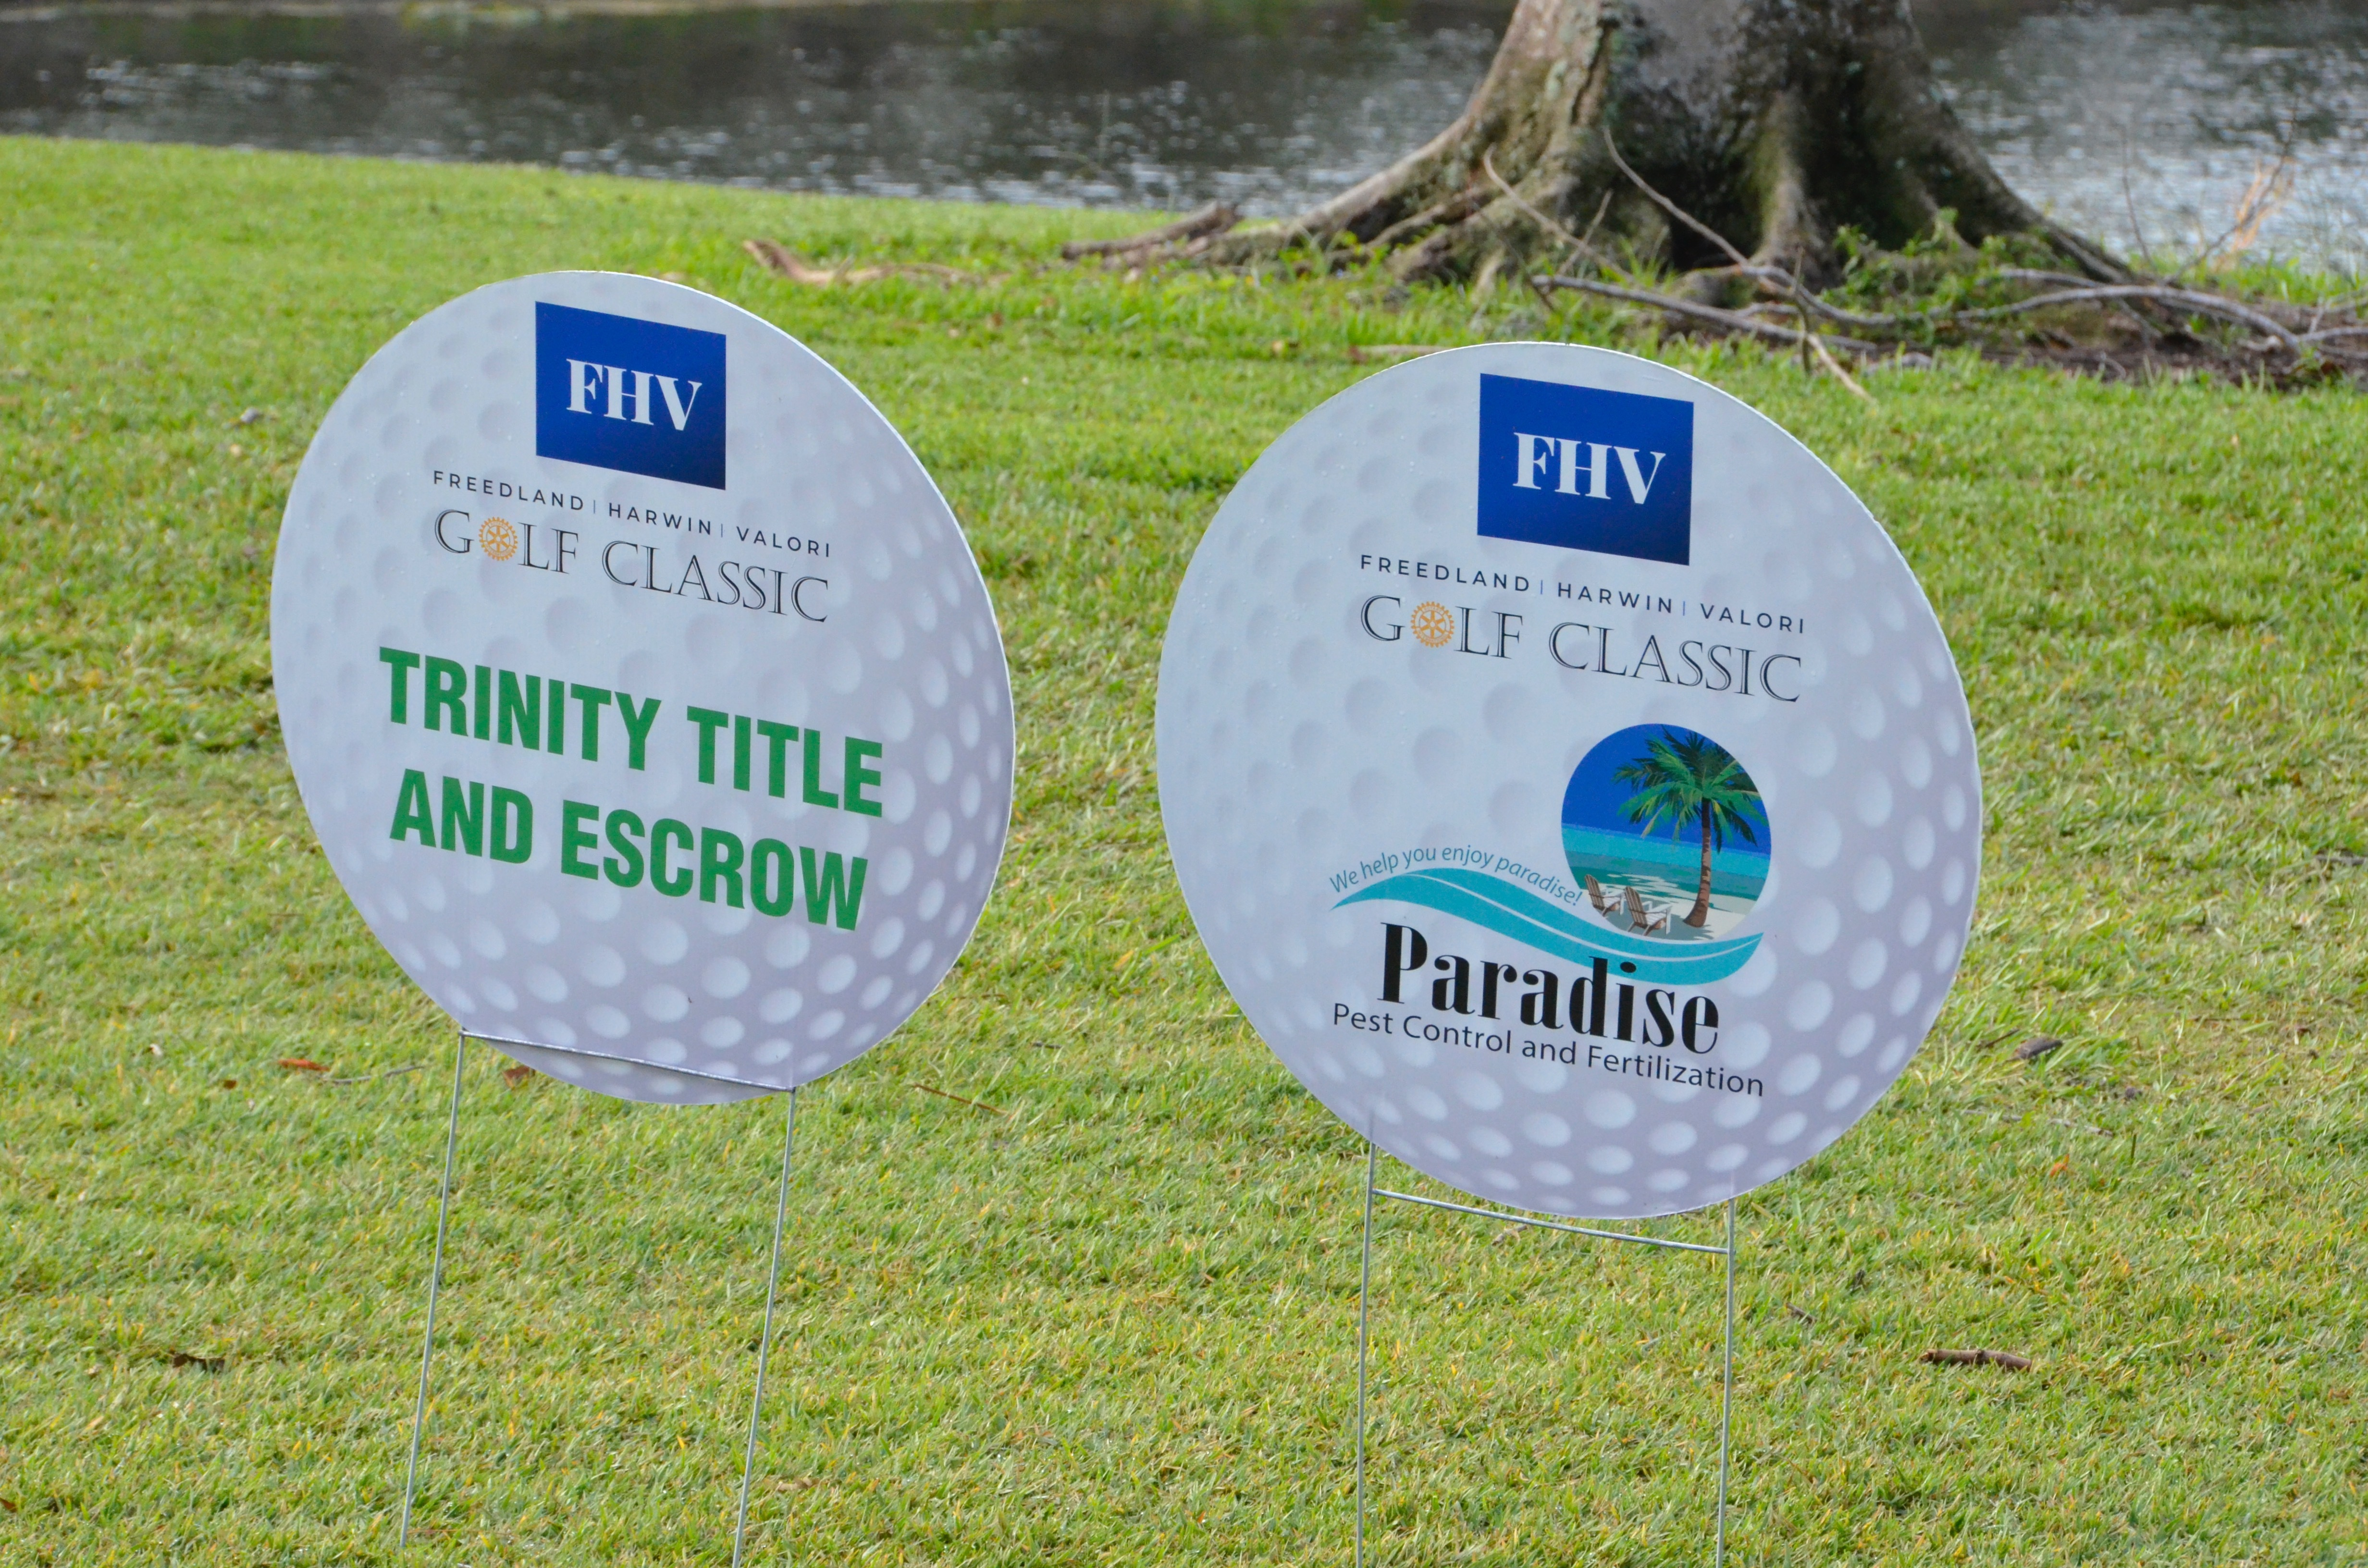 33rd Annual Rotary Golf Classic Sponsored by FHVLEGAL.COM gallery image #46